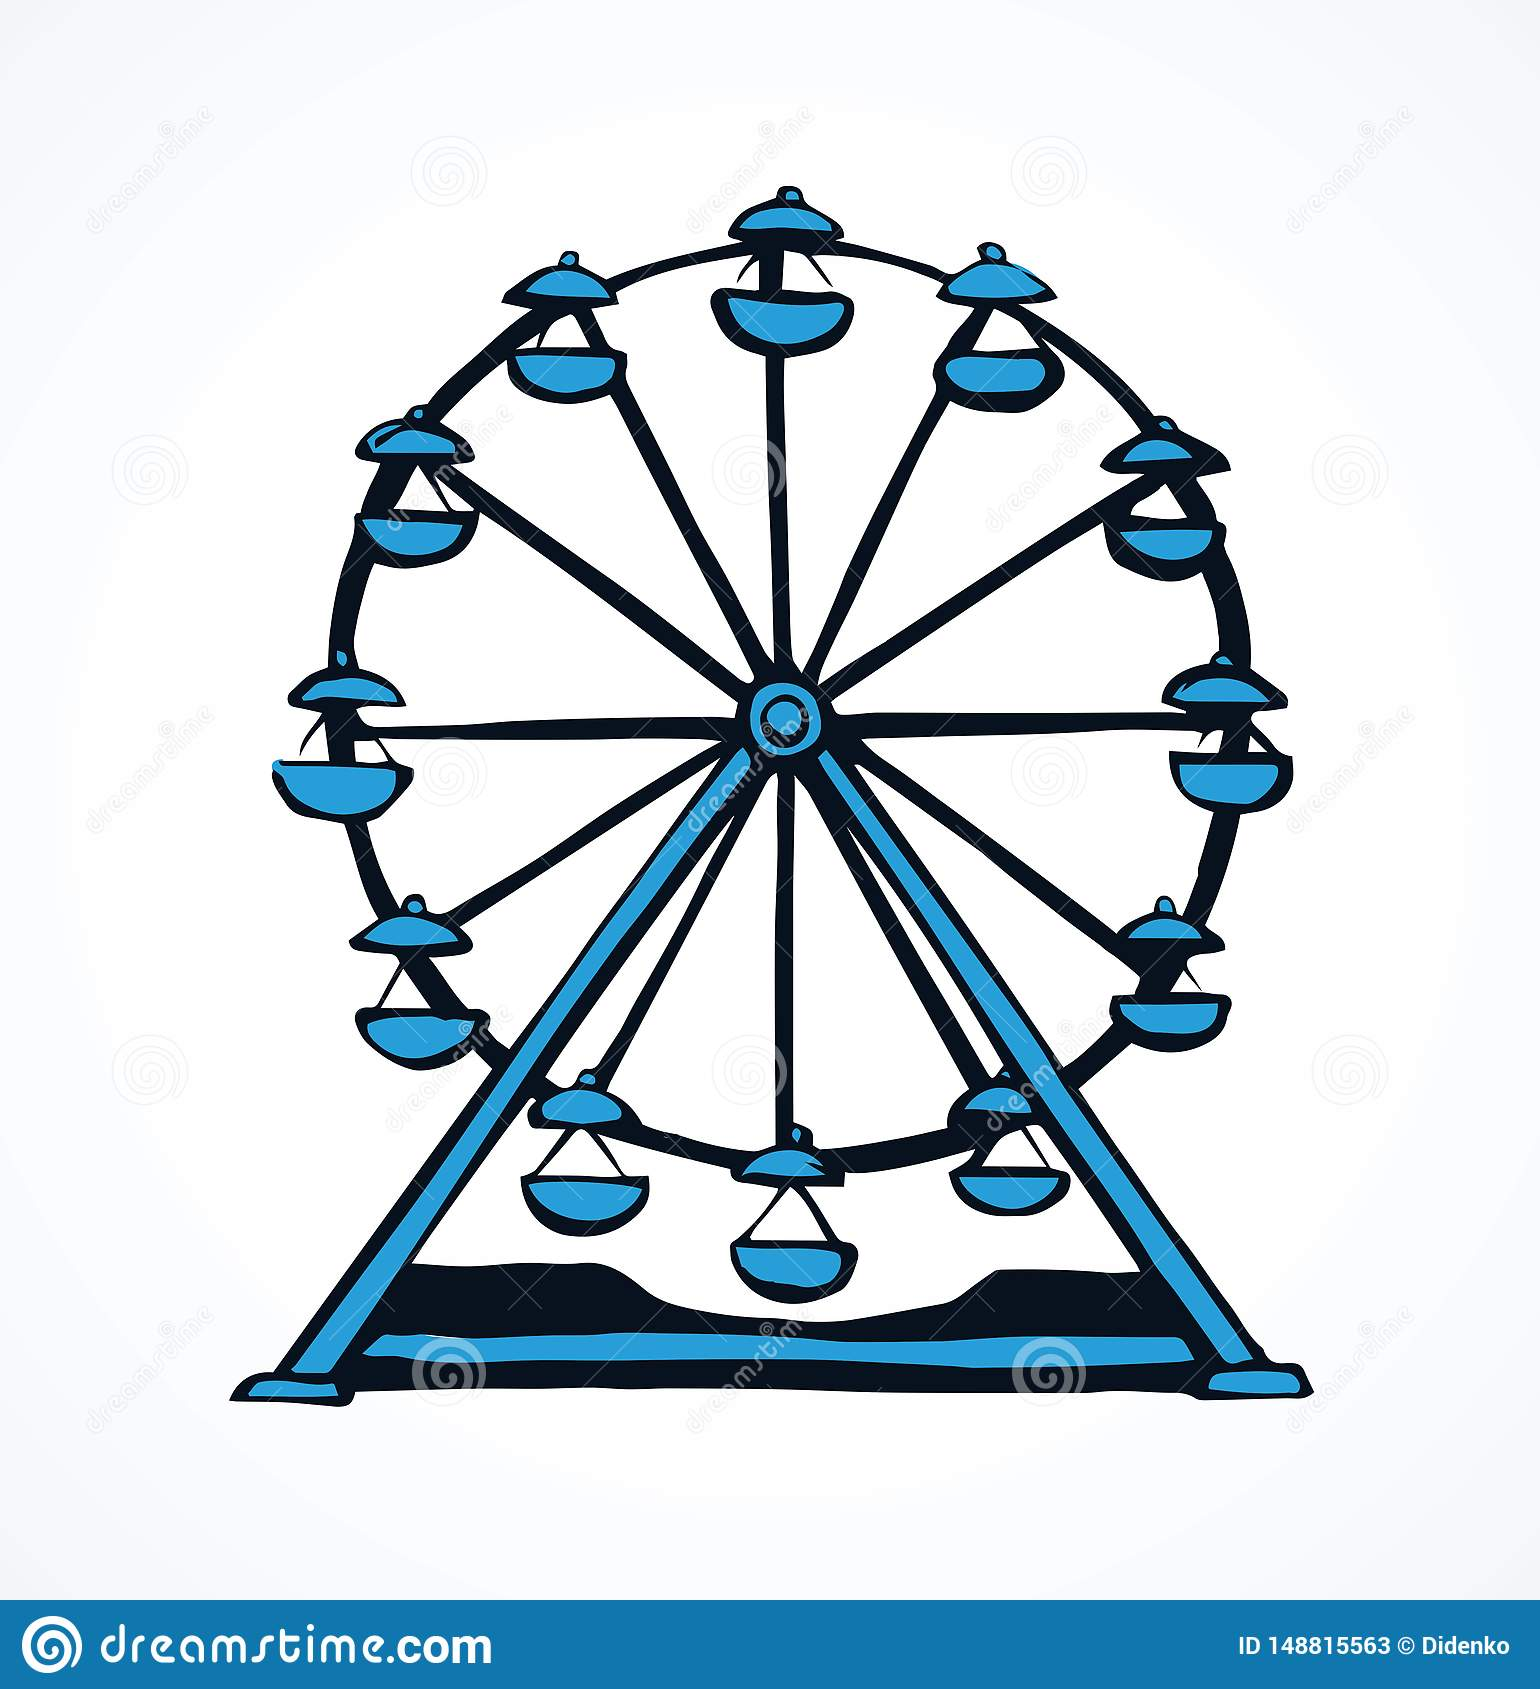 Ferris Wheel Vector Drawing Stock Vector Illustration Of High Child 148815563